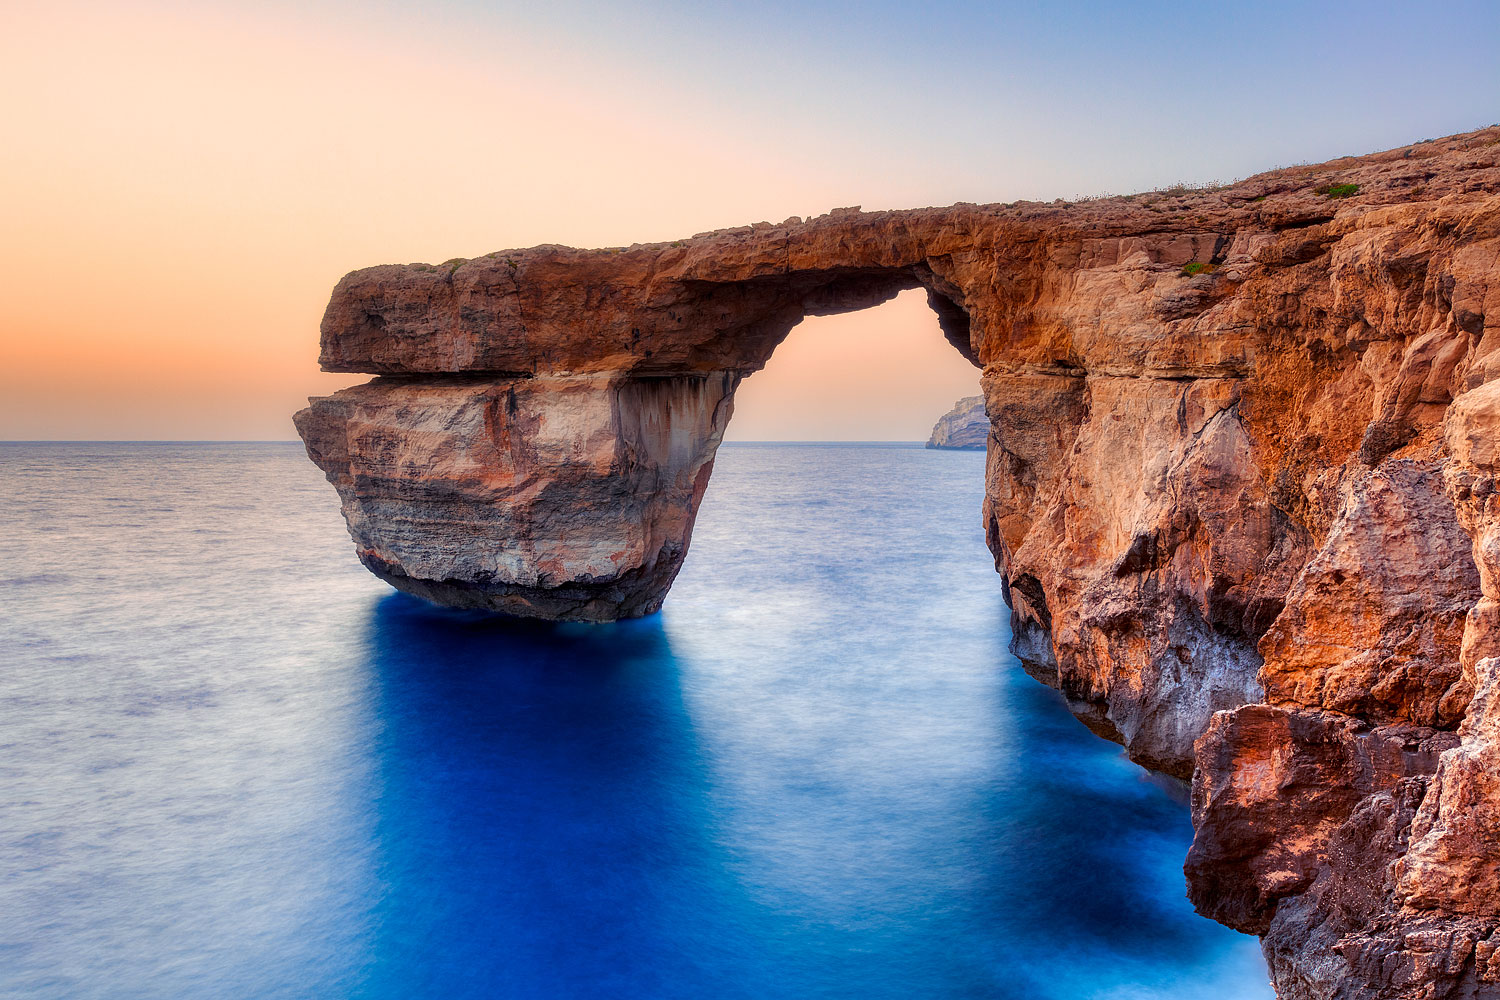 The Azure Window - natural arch on the coast of the Maltese island Gozo